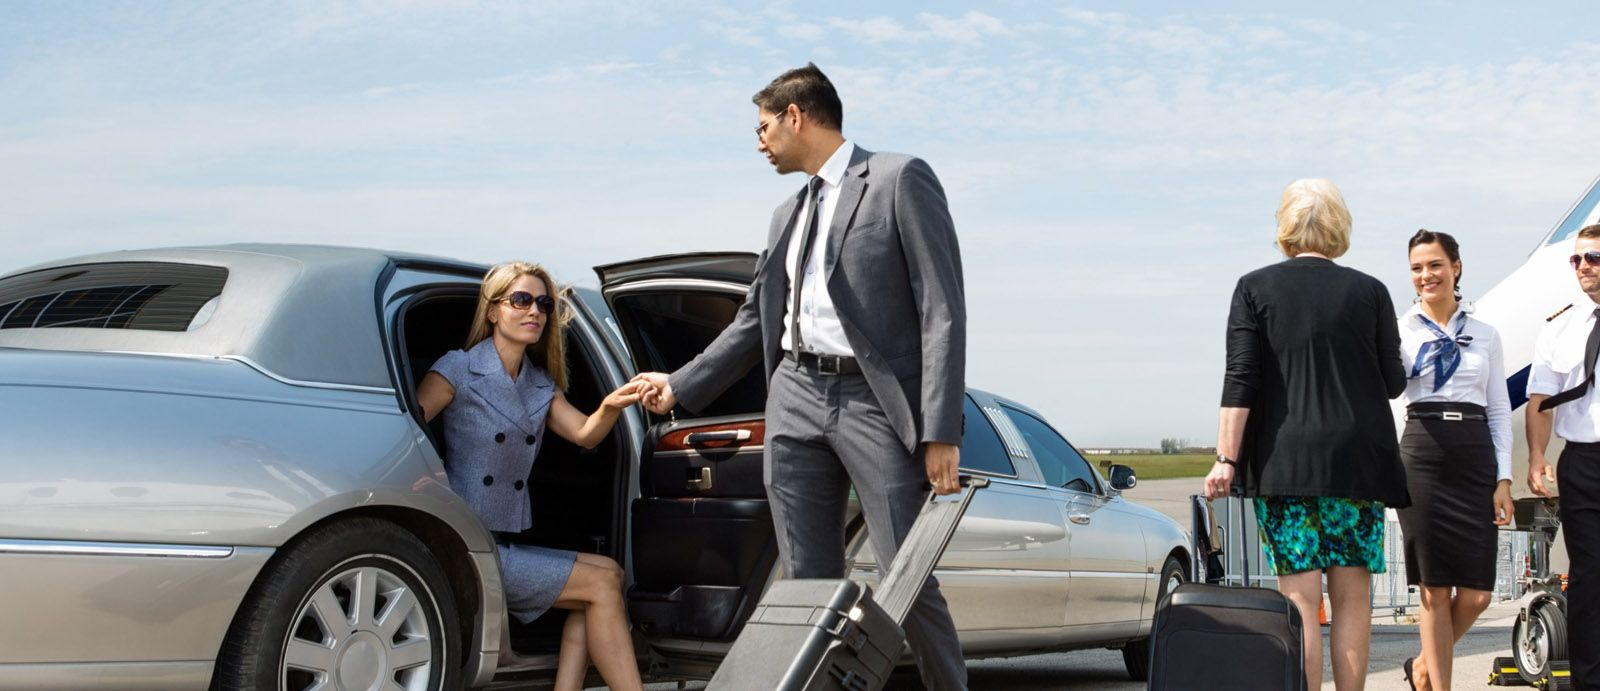 Photos Of Executive Car Service From Heathrow As Fine Info For You